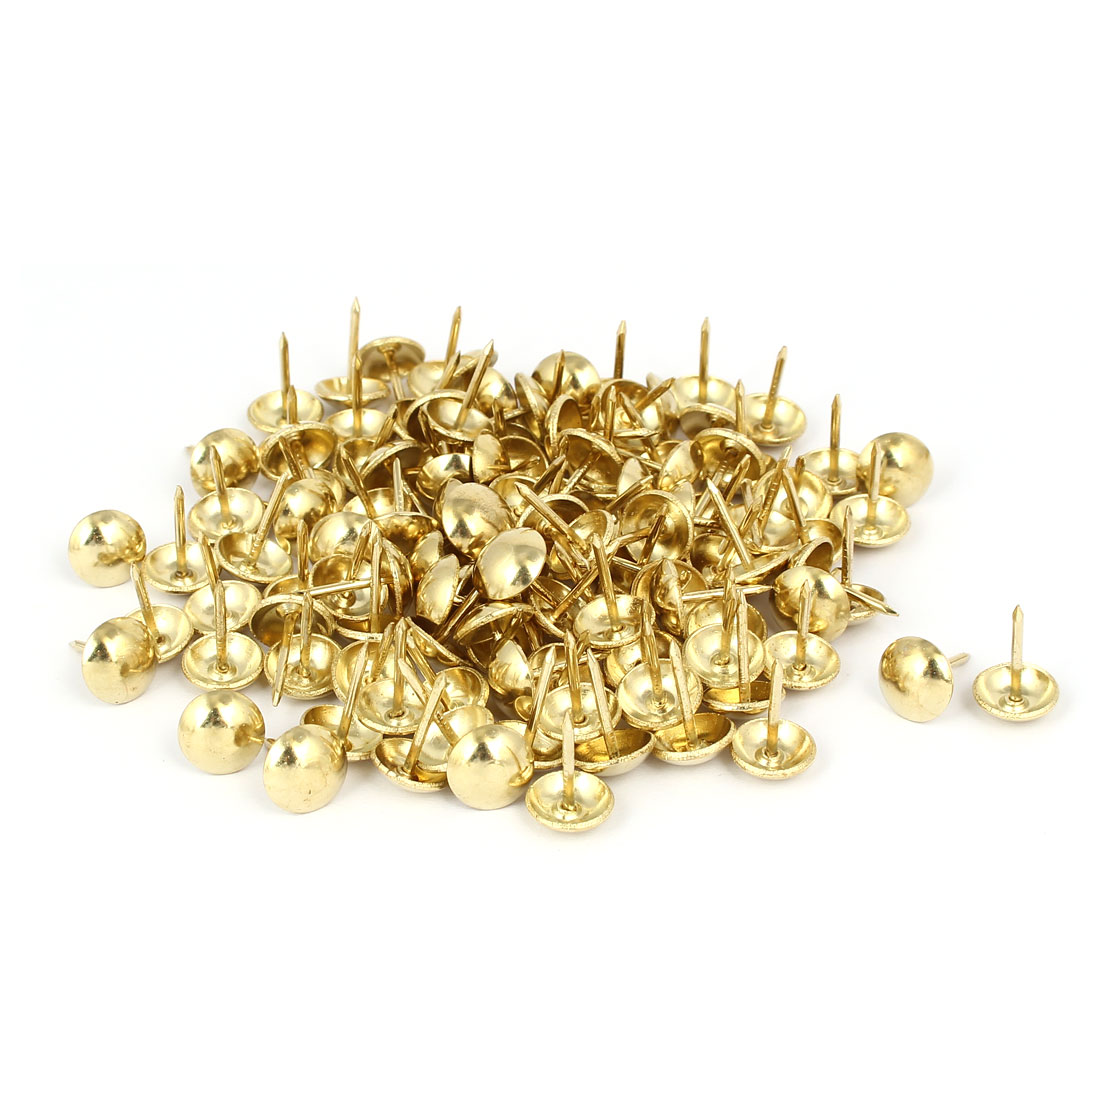 """Metal Round Head Upholstery Tack Nail Gold Tone 7/16"""" Dia 120pcs for Home Decor"""